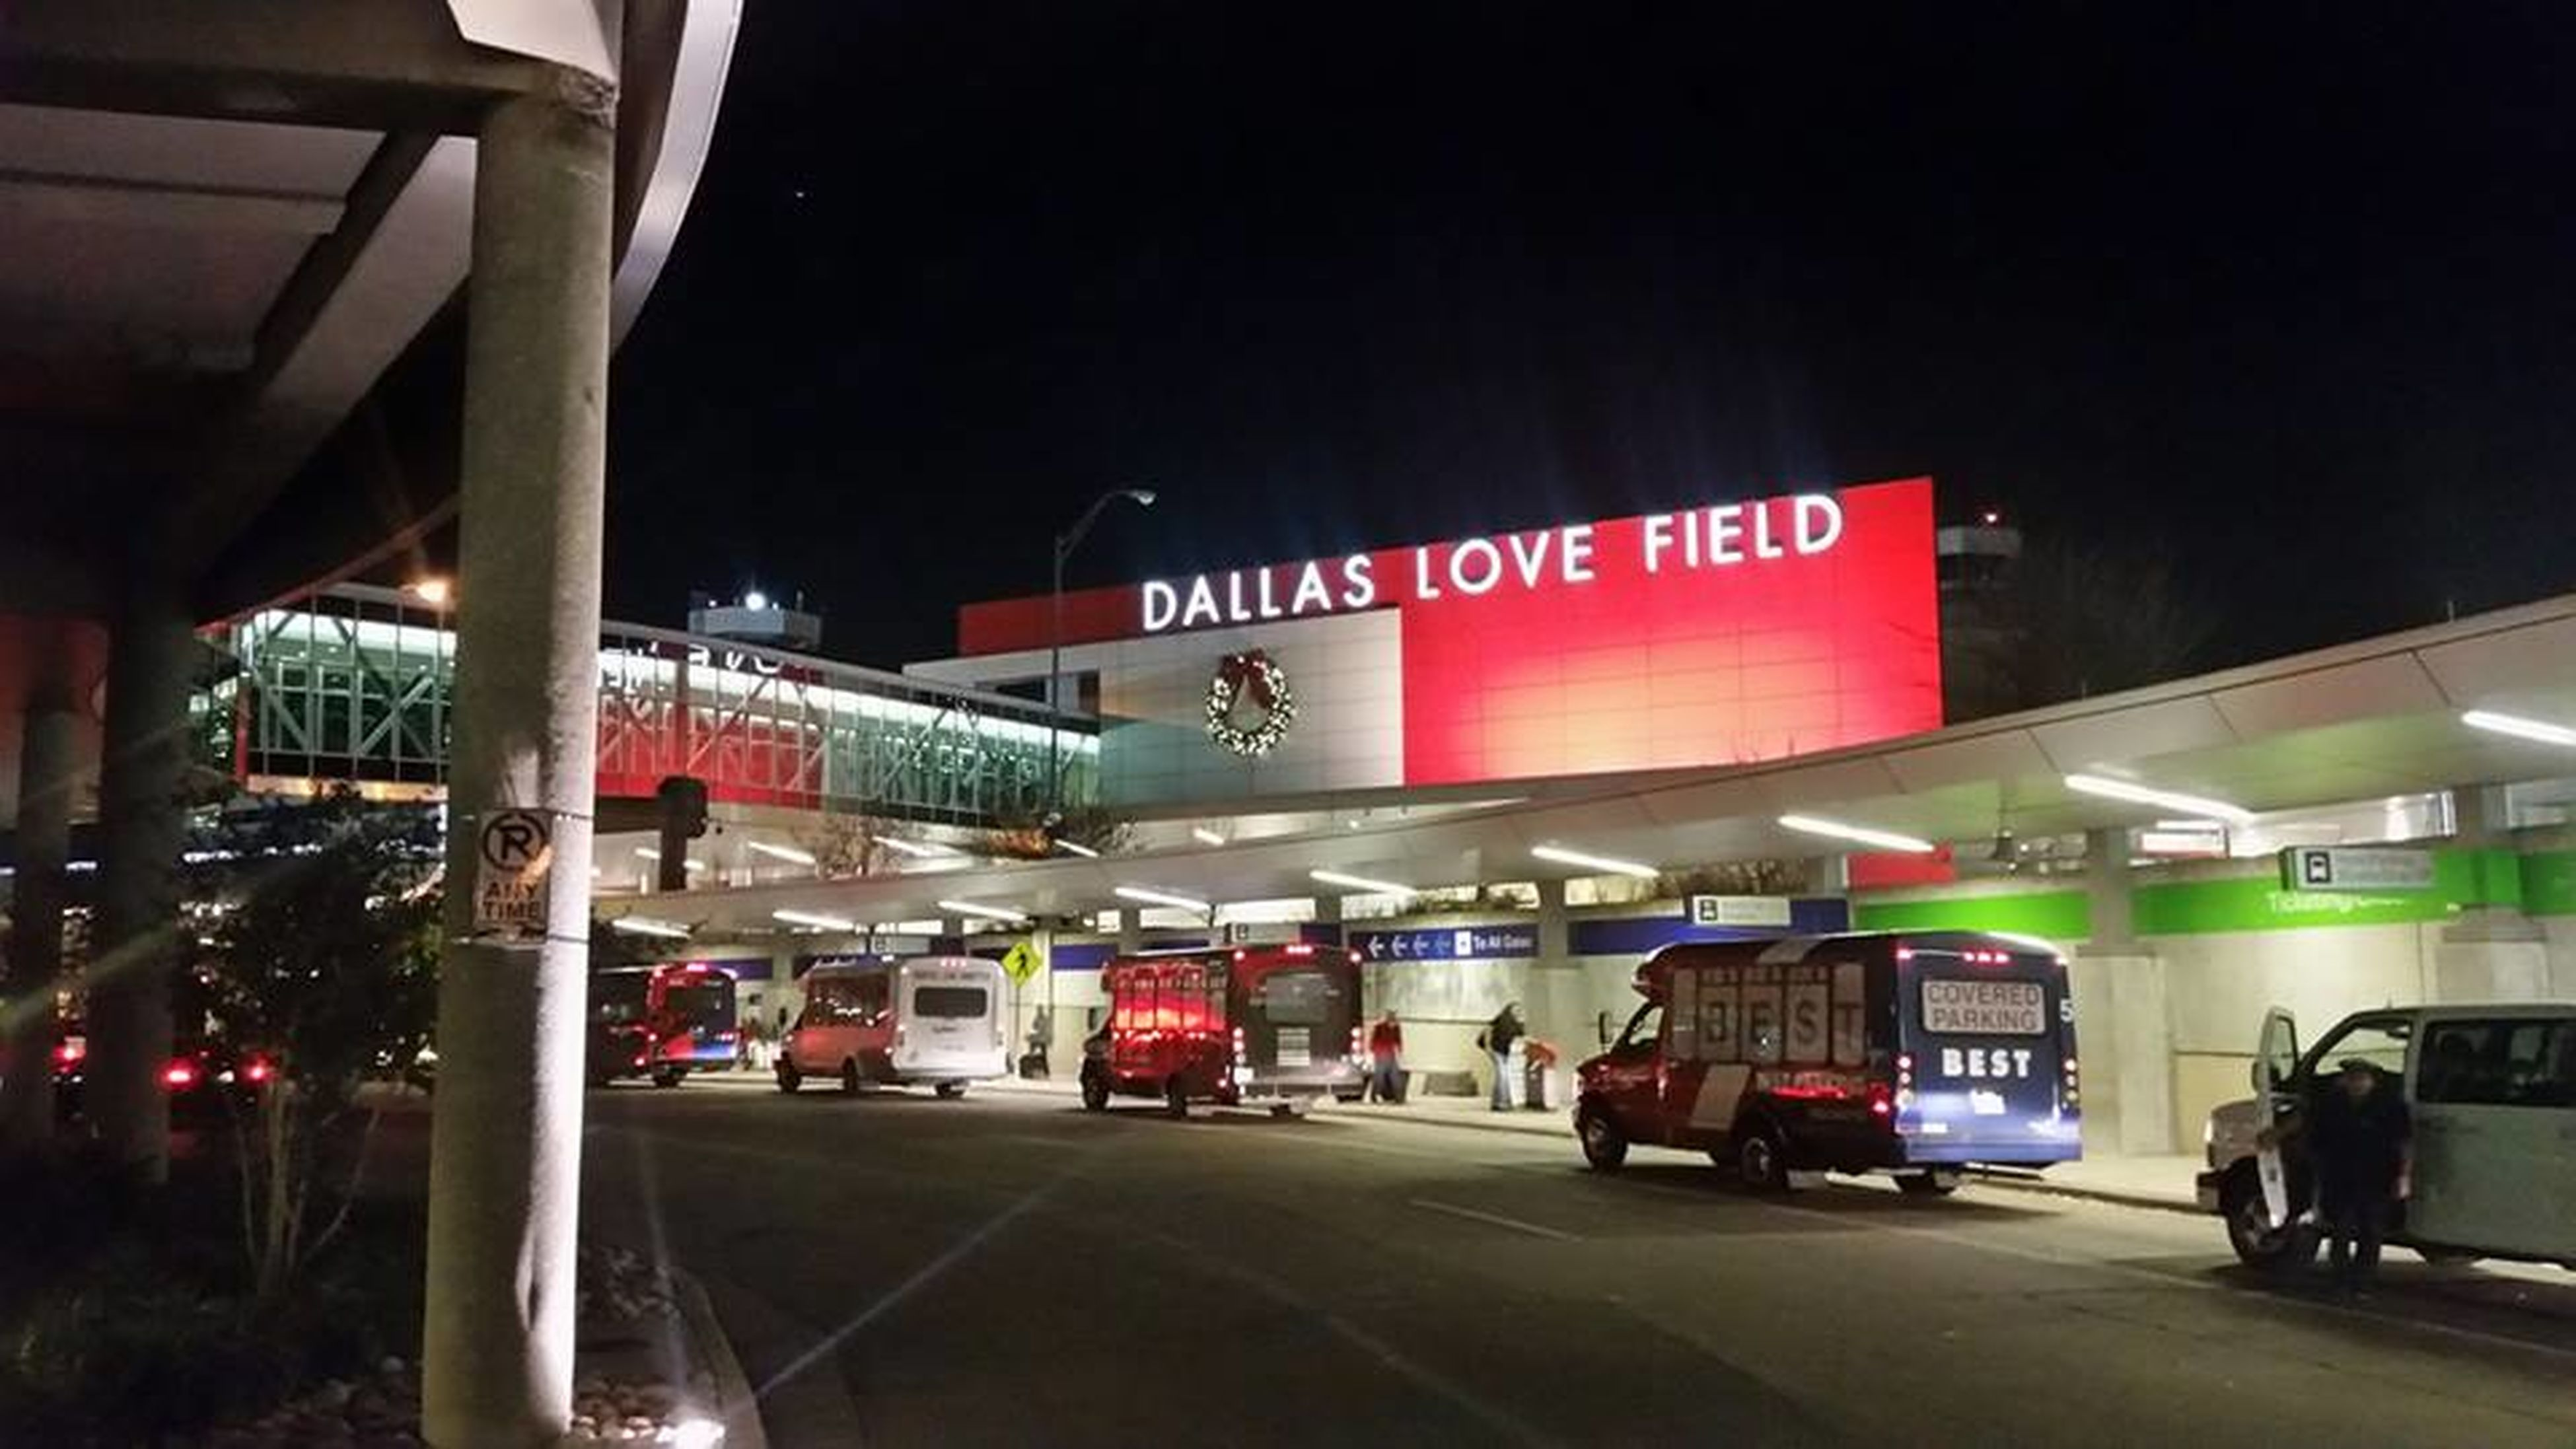 Airport Built Structure Dallas Love Field Airport Red Plants Love Fields Night Rental Trucks Sky Ridge Travel